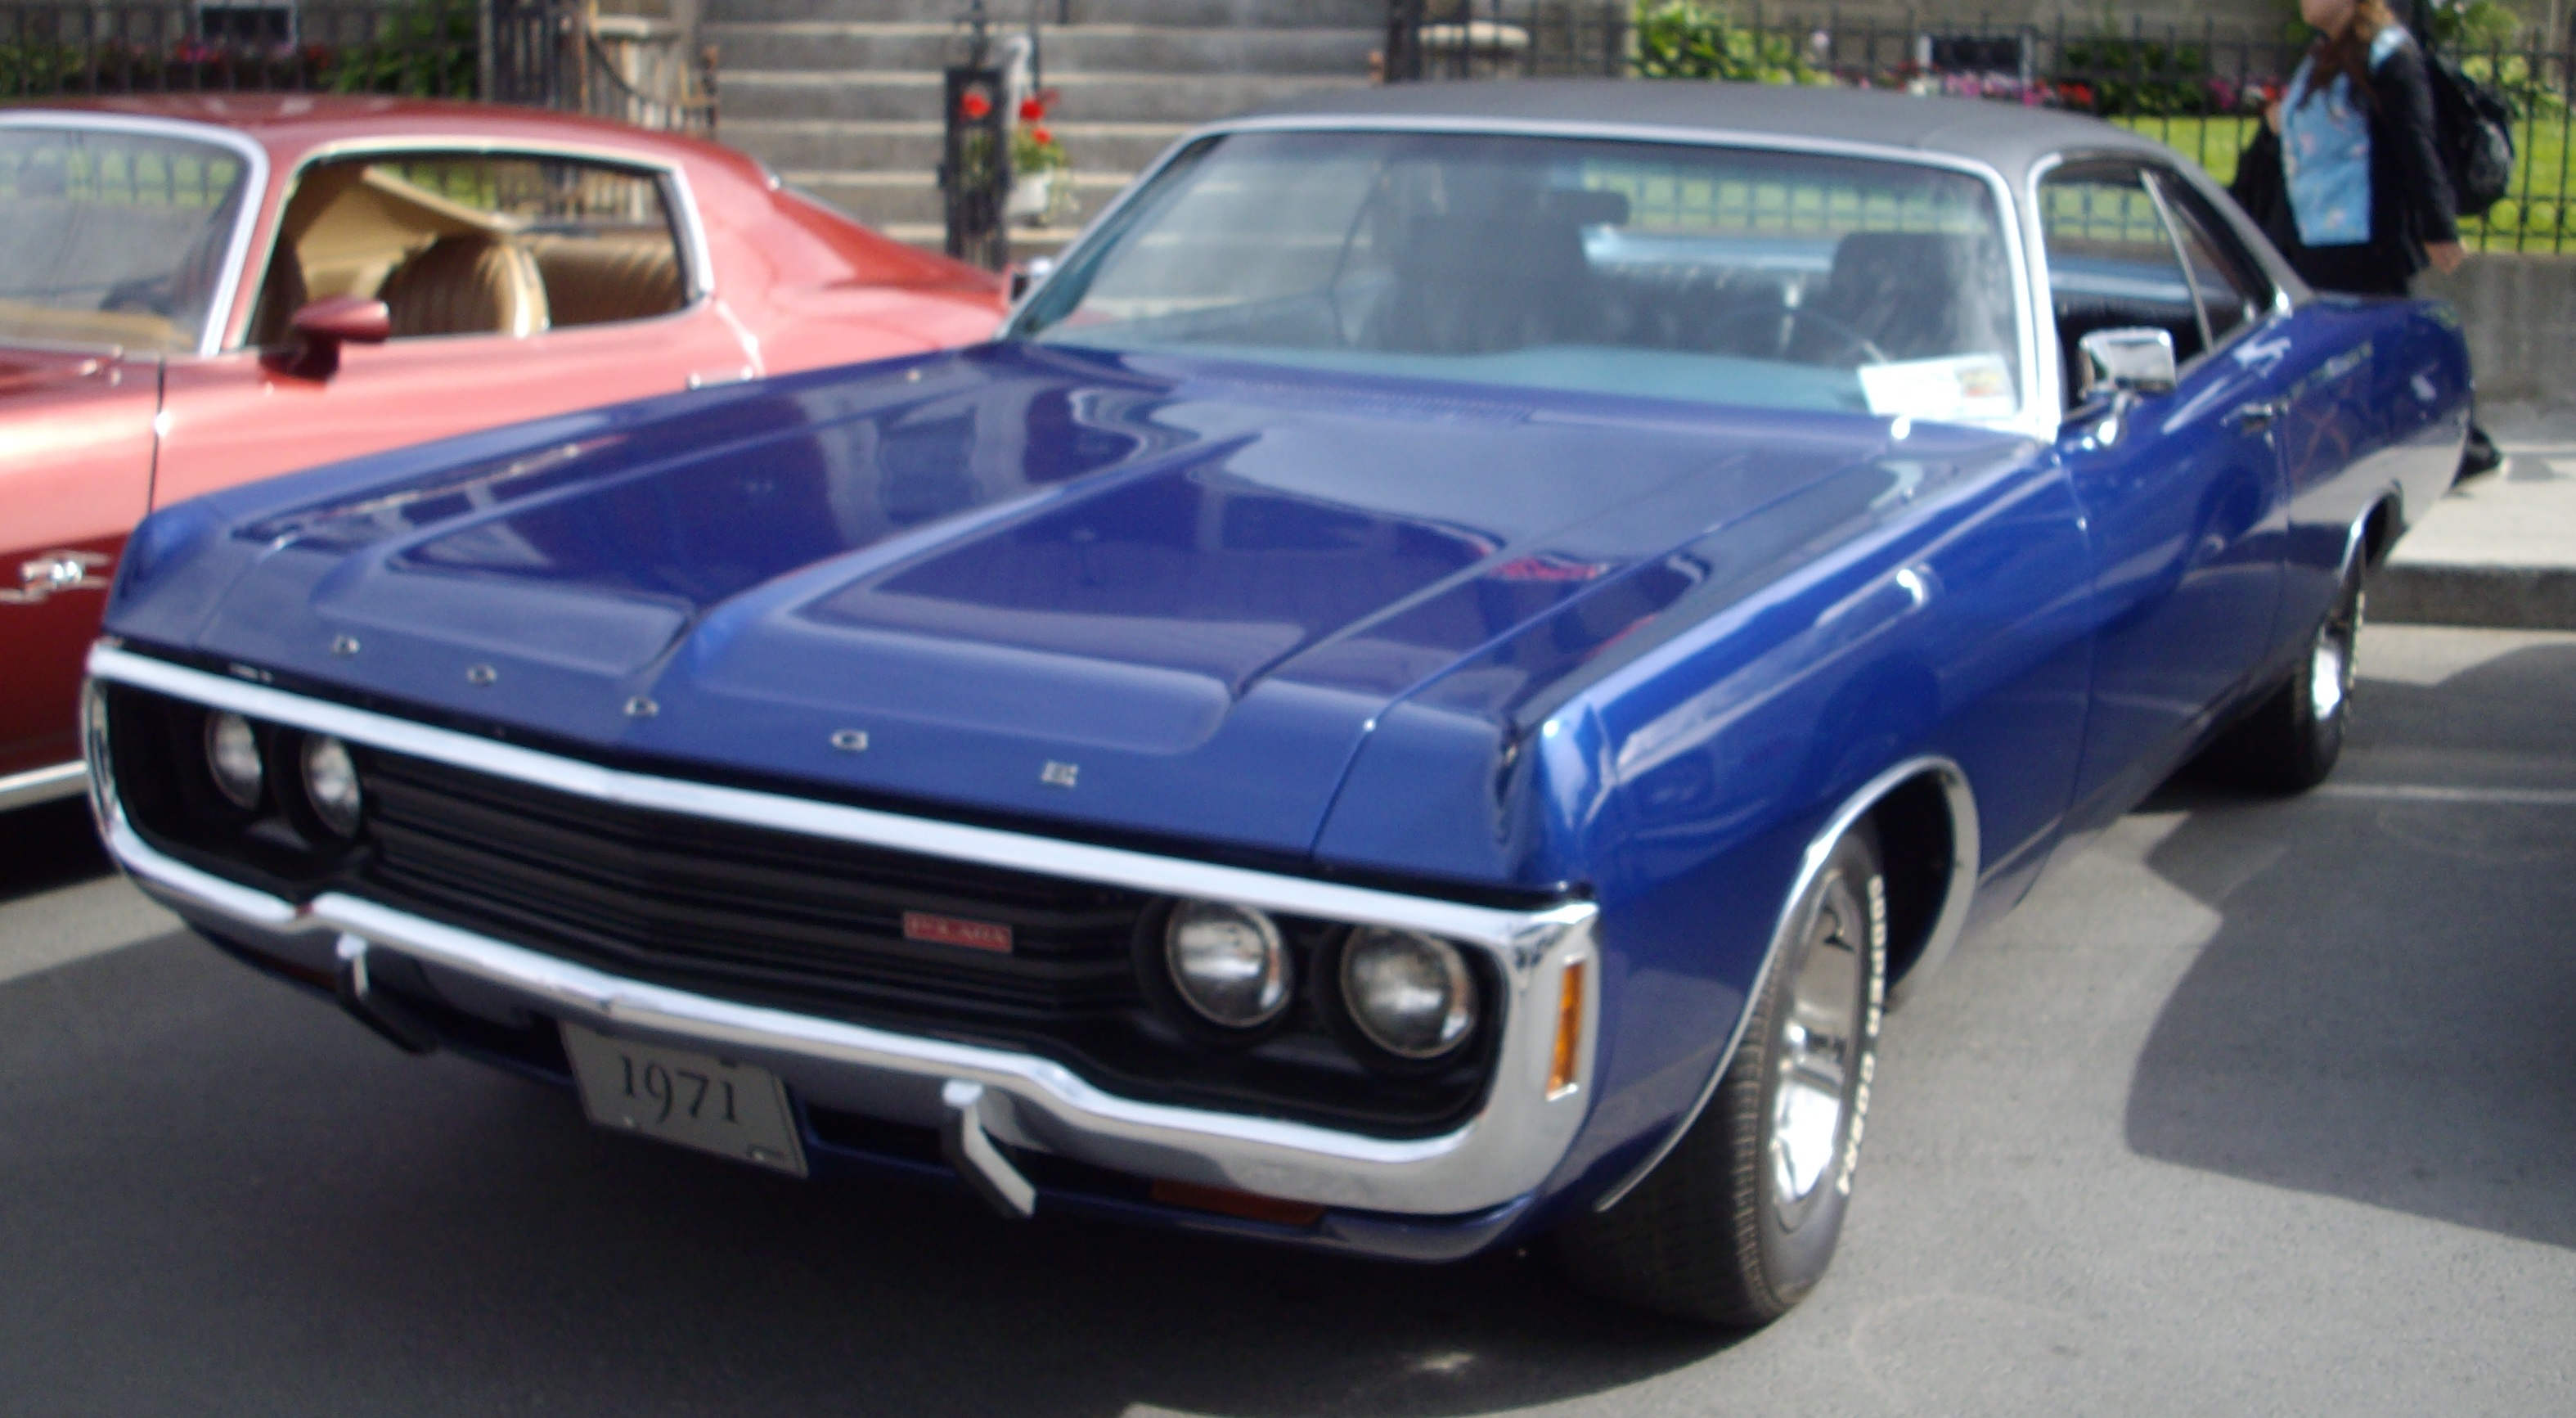 '71_Dodge_Polara_(Cruisin'_At_The_Boardwalk_'12)